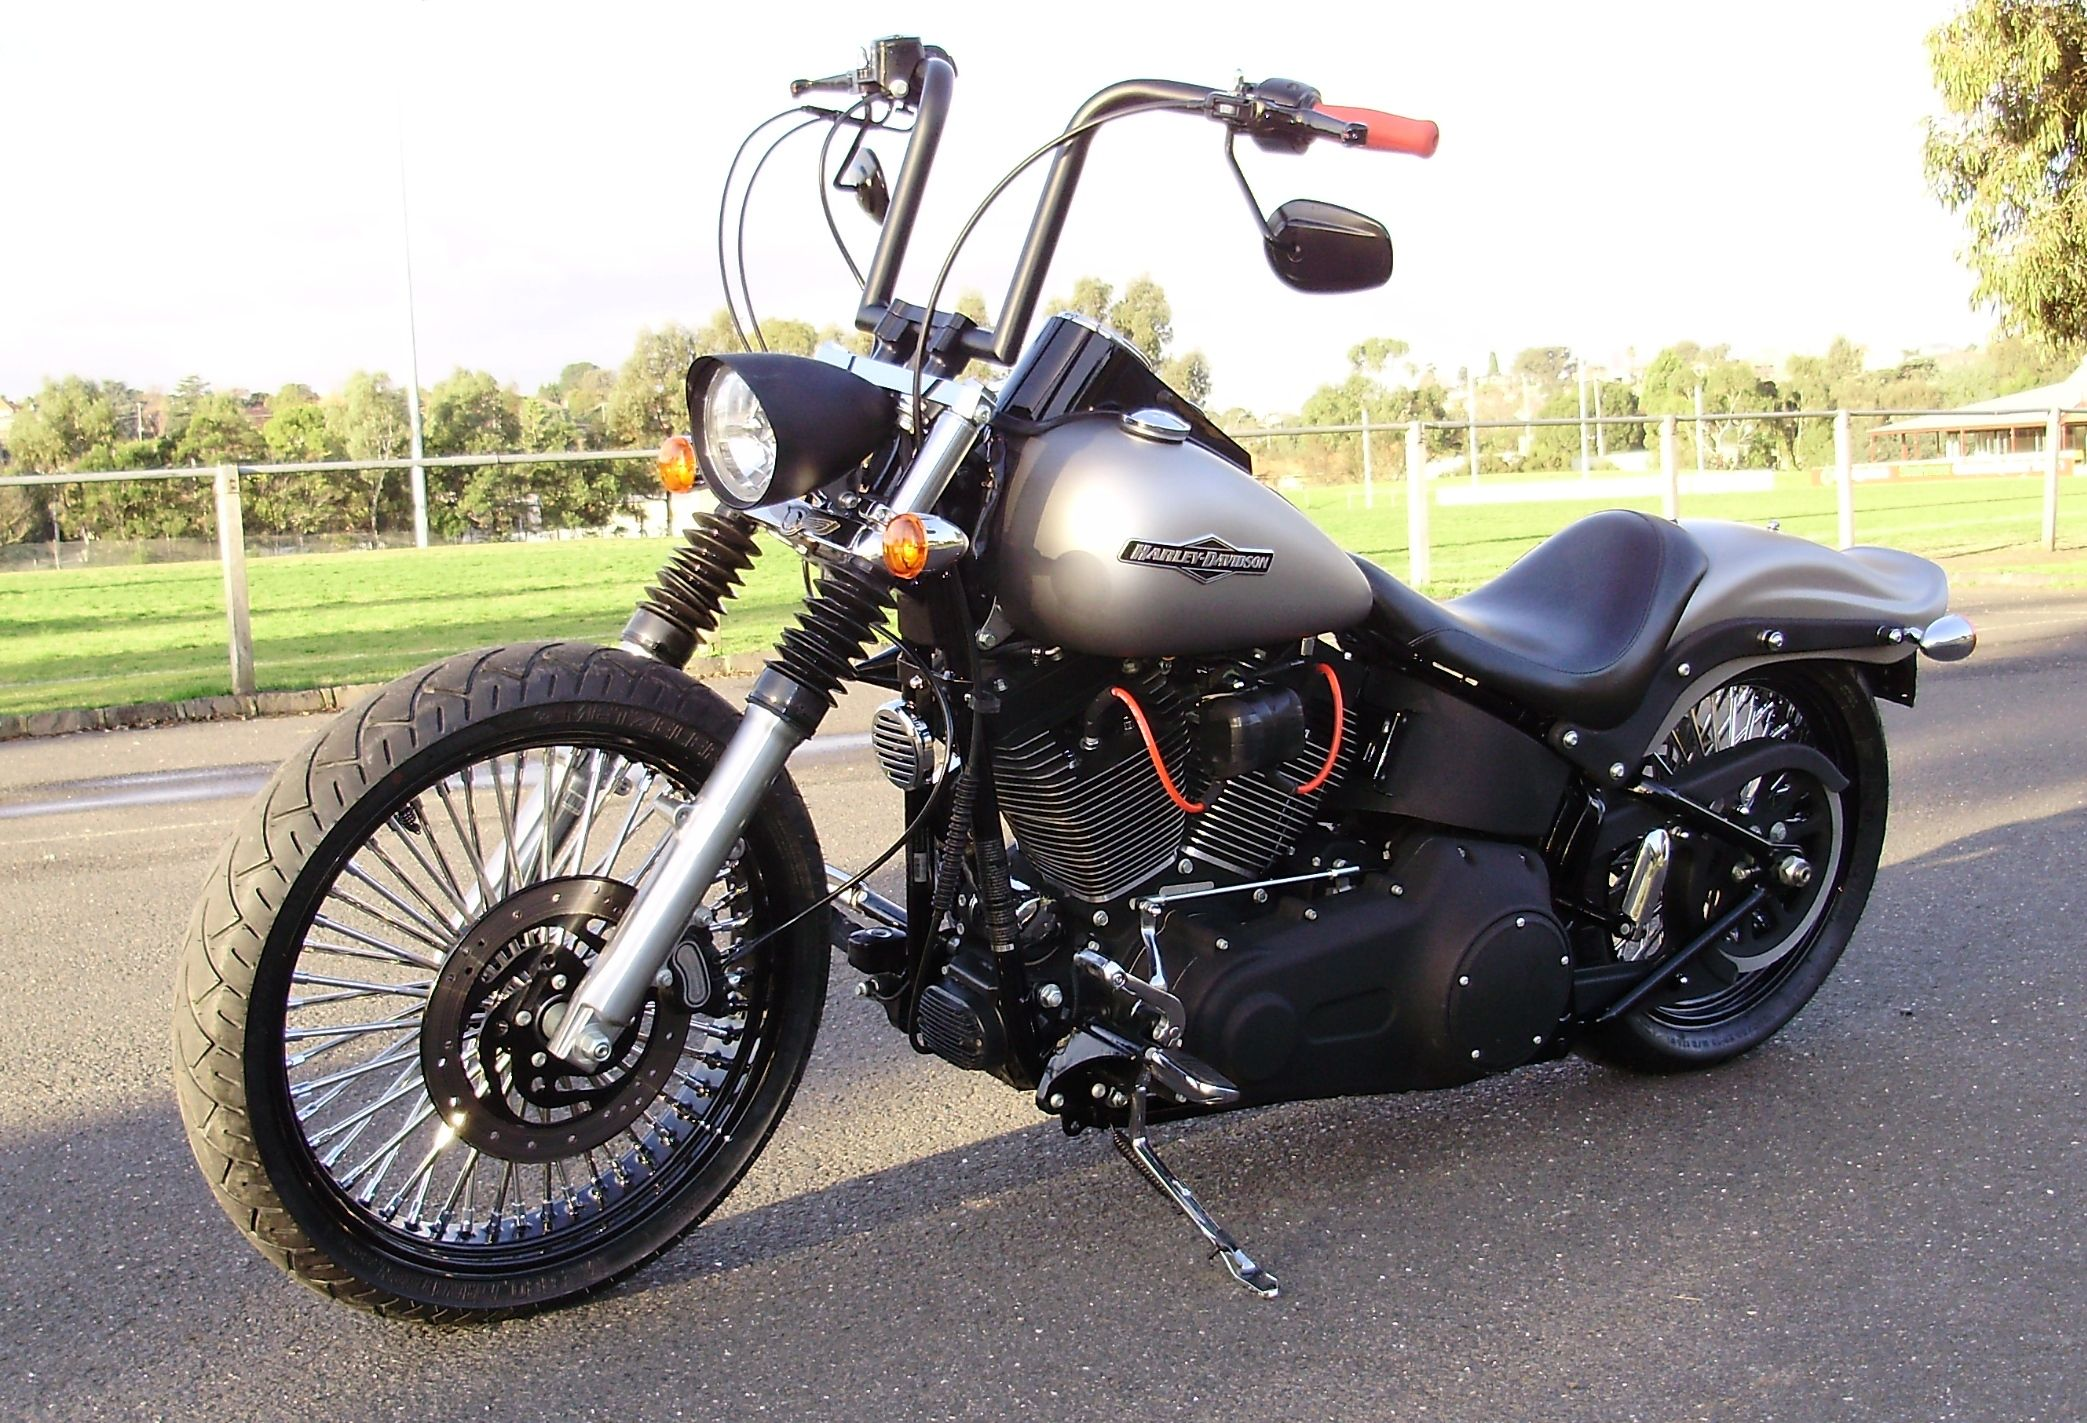 harley night train project cruzin customs harley davidson parts and accessories harley. Black Bedroom Furniture Sets. Home Design Ideas